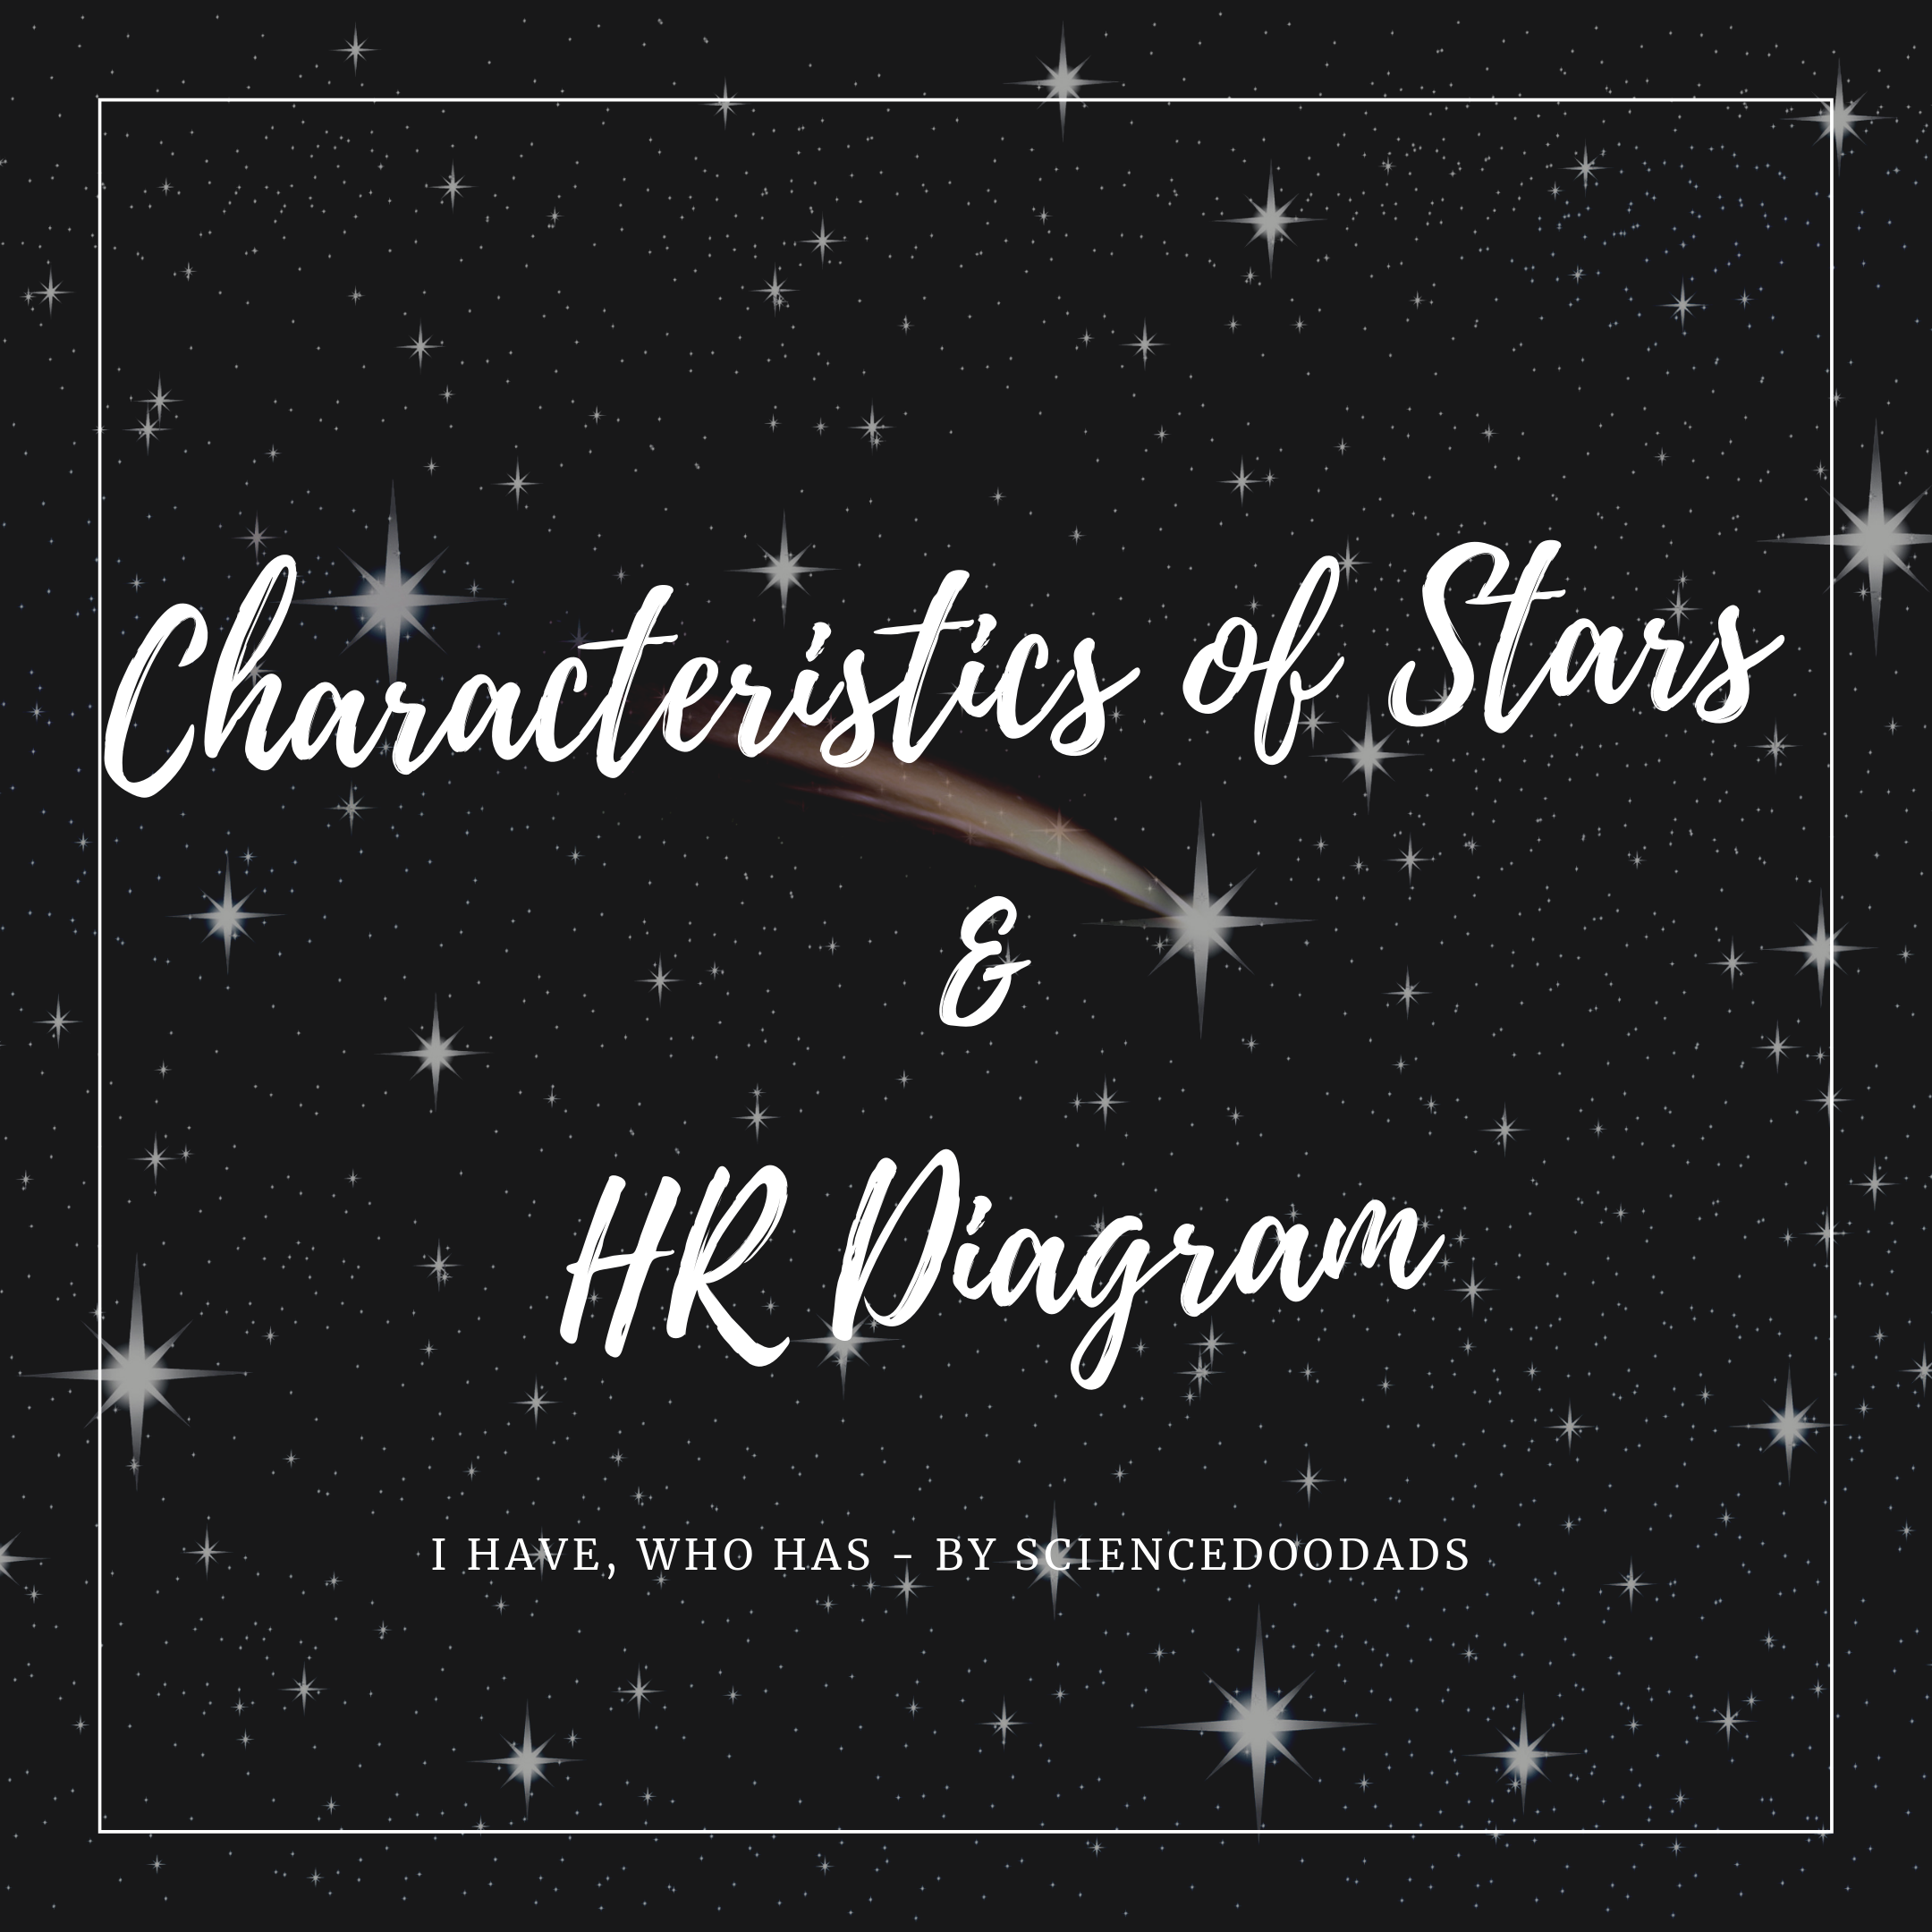 Characteristics Of Stars And Hr Diagram